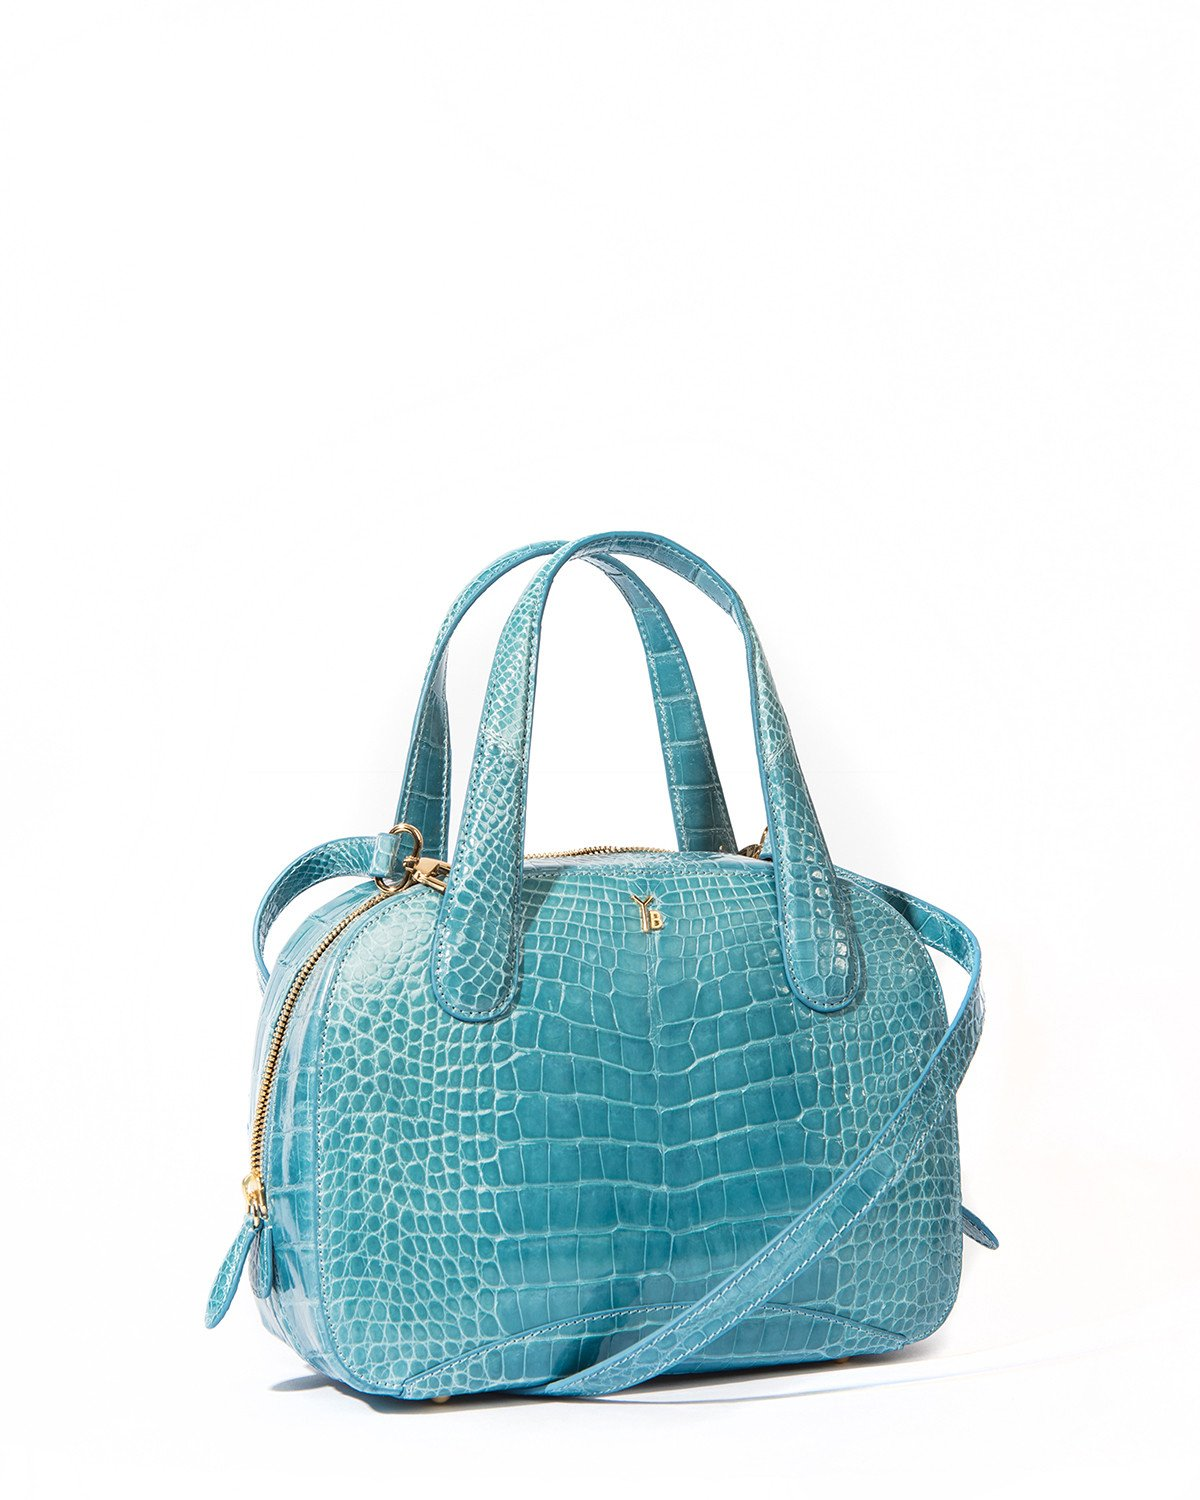 Genuine American Alligator Sky Blue Pristine Angle View with matching Long Shoulder Strap Charles S Tote Style